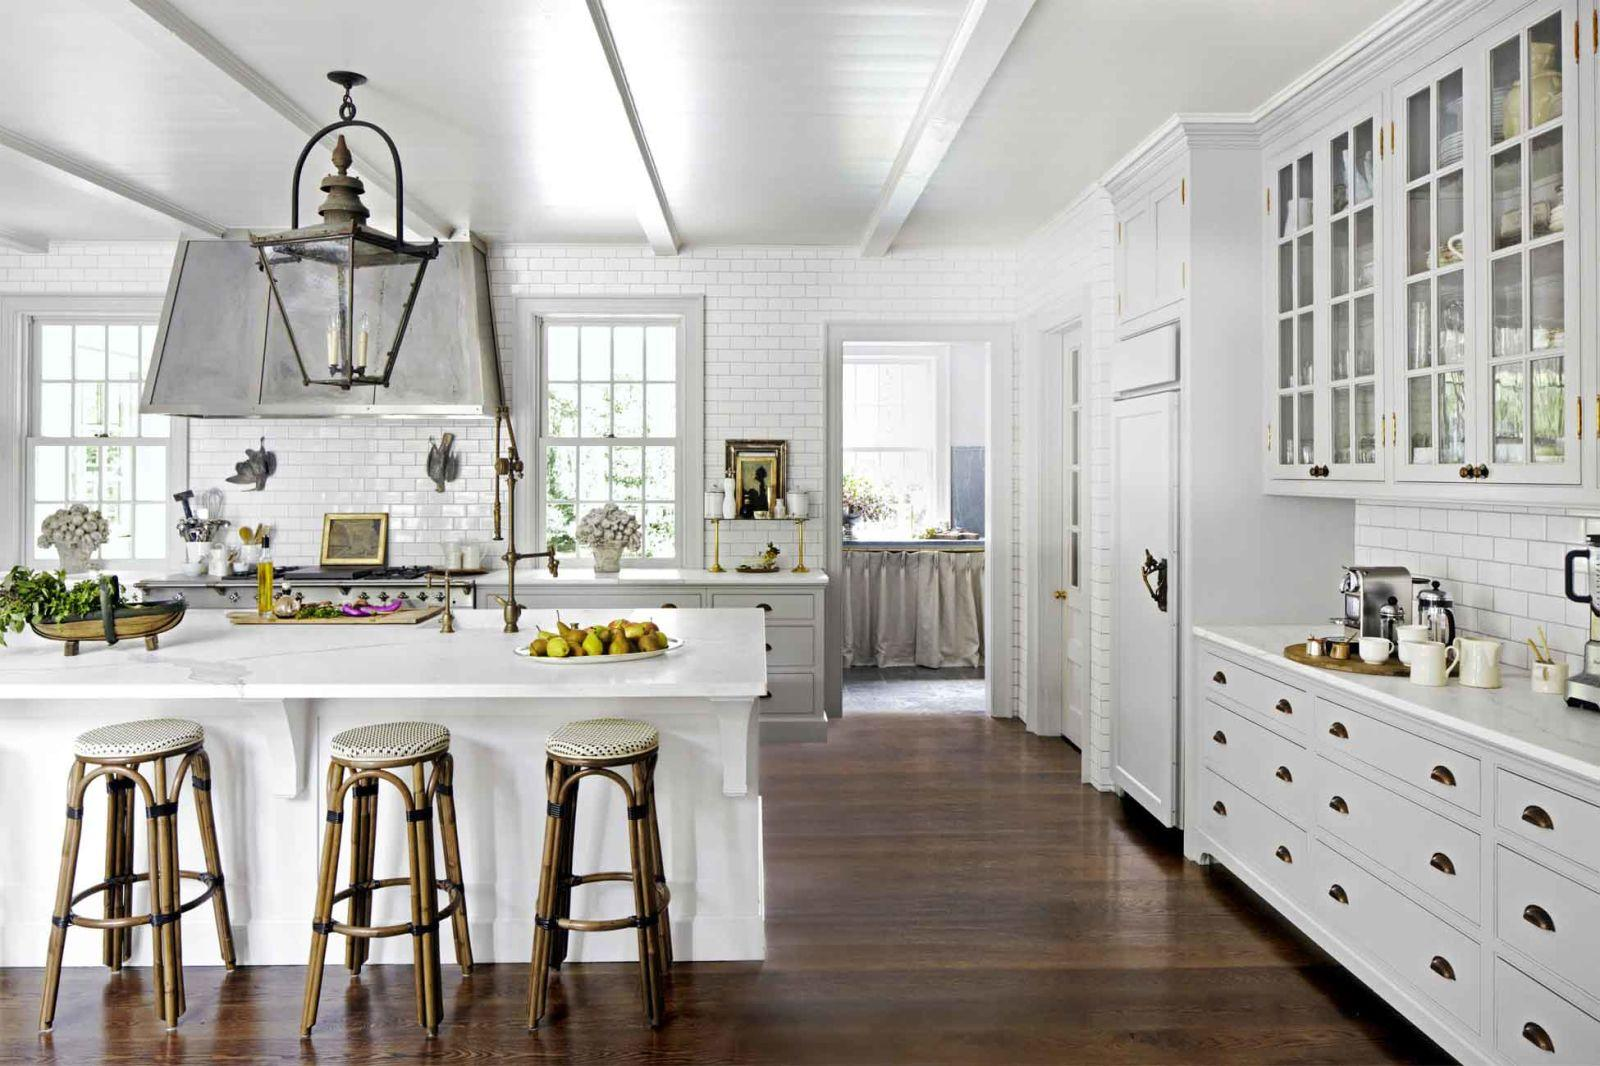 <p>If you add a dark floor stain to your kitchen floors, select a light paint for the island, walls, and cabinetry.</p>